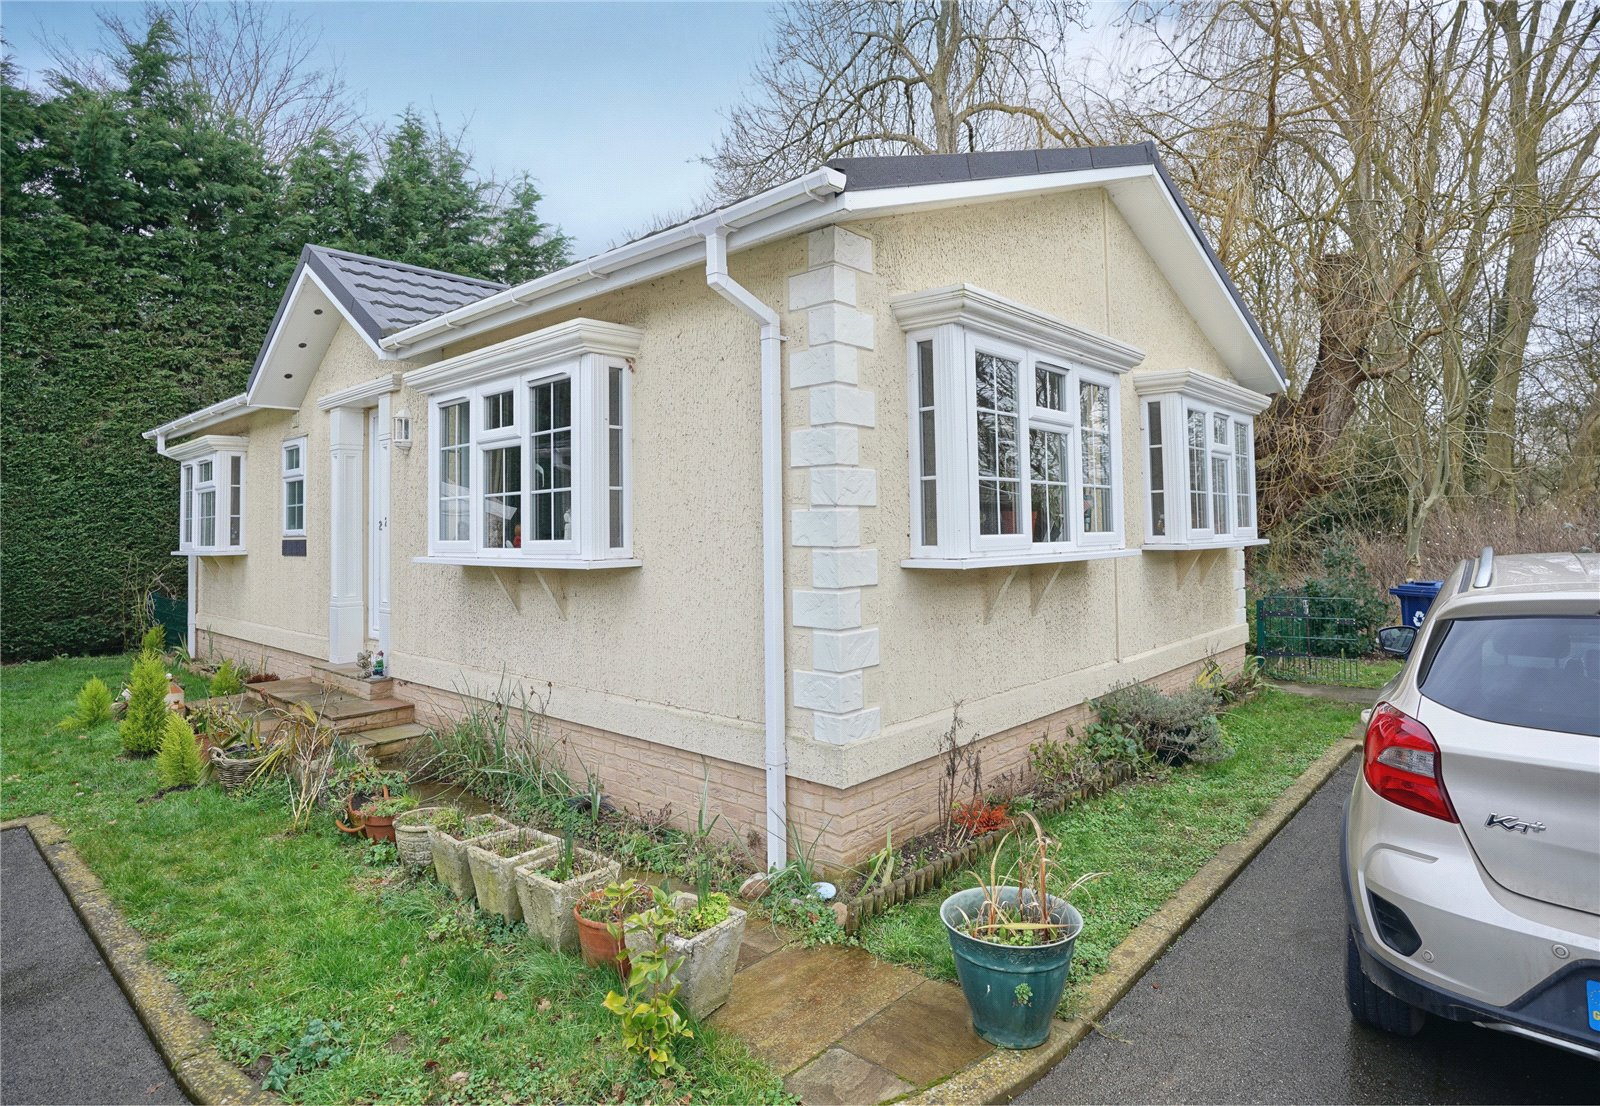 2 bed house for sale in Park Lane, PE29 2AN  - Property Image 1